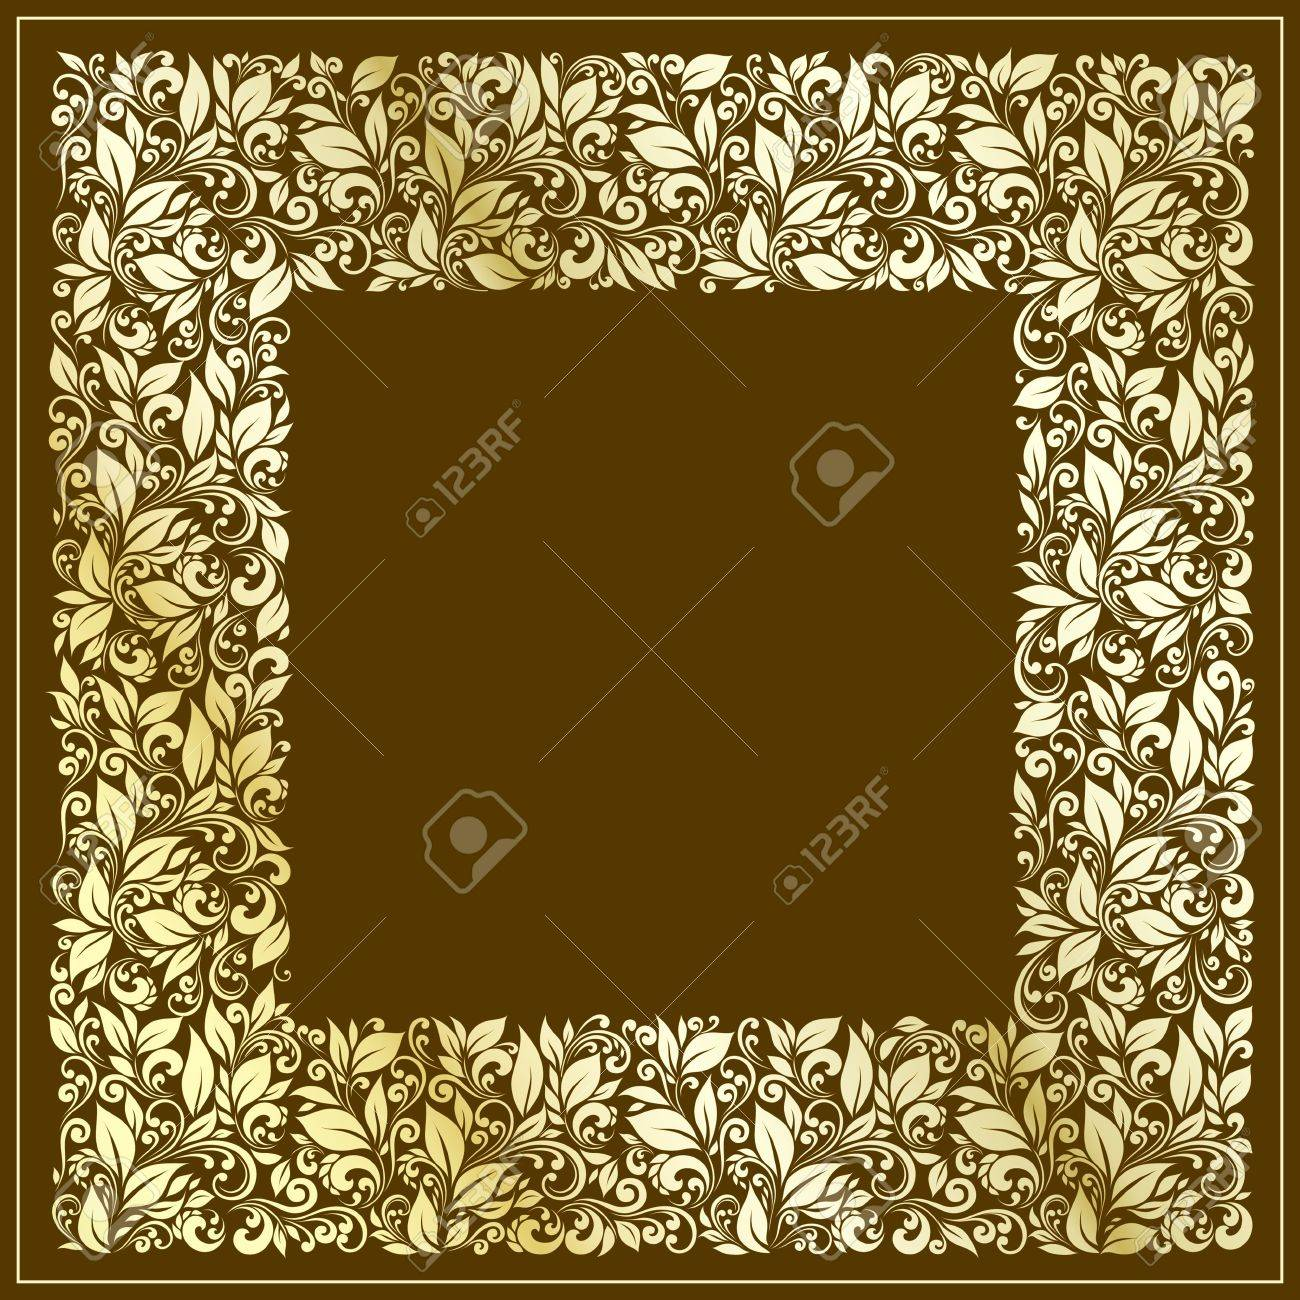 square frame from floral pattern in vintage style - 12422968